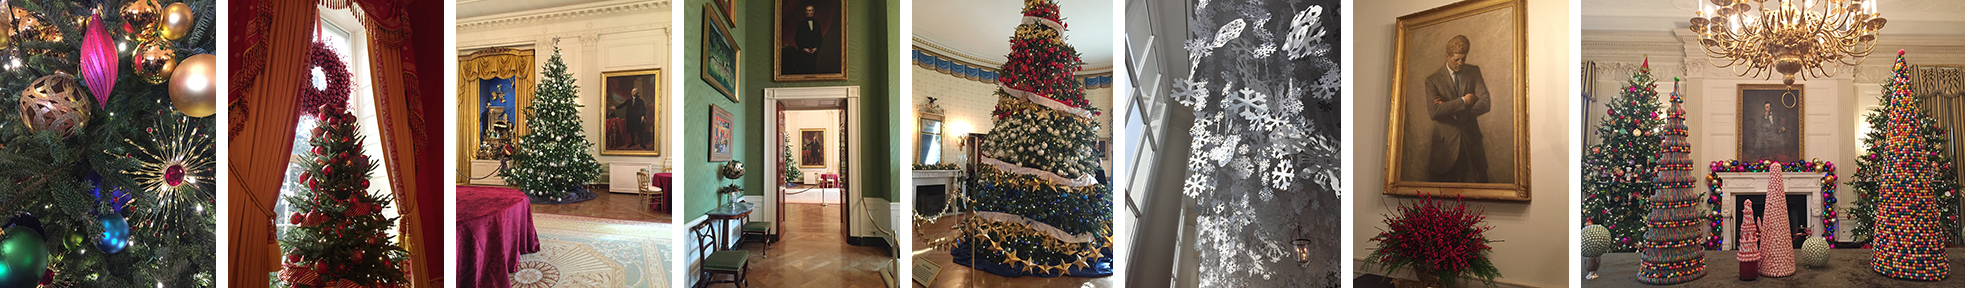 The White House tour was a visual treat at every turn.